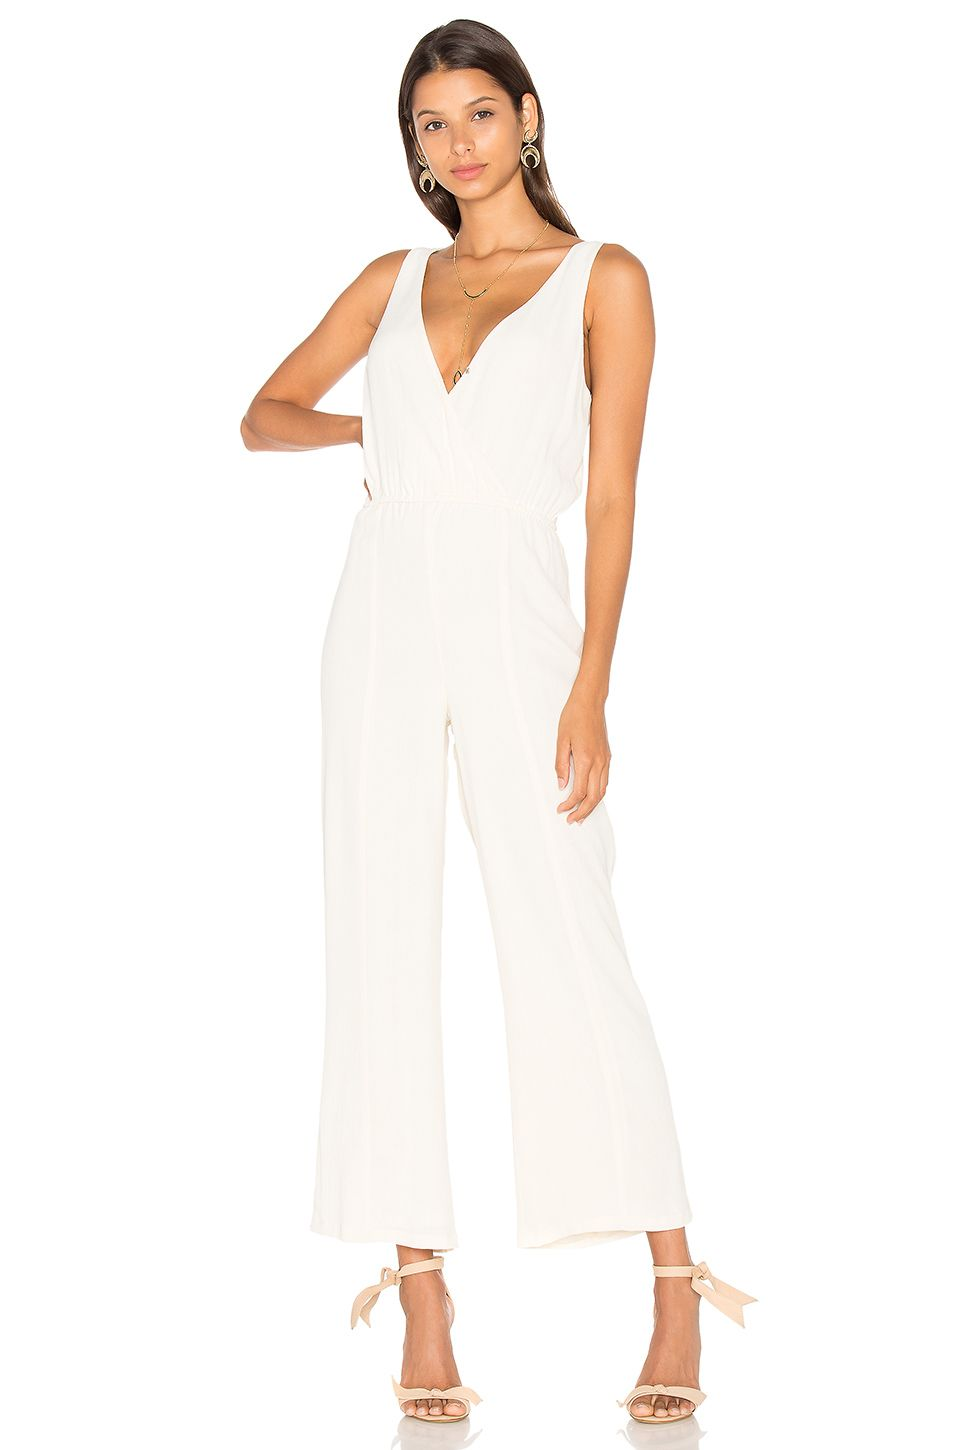 ffb3069af70  privacyplease  cloth   White Jumpsuit